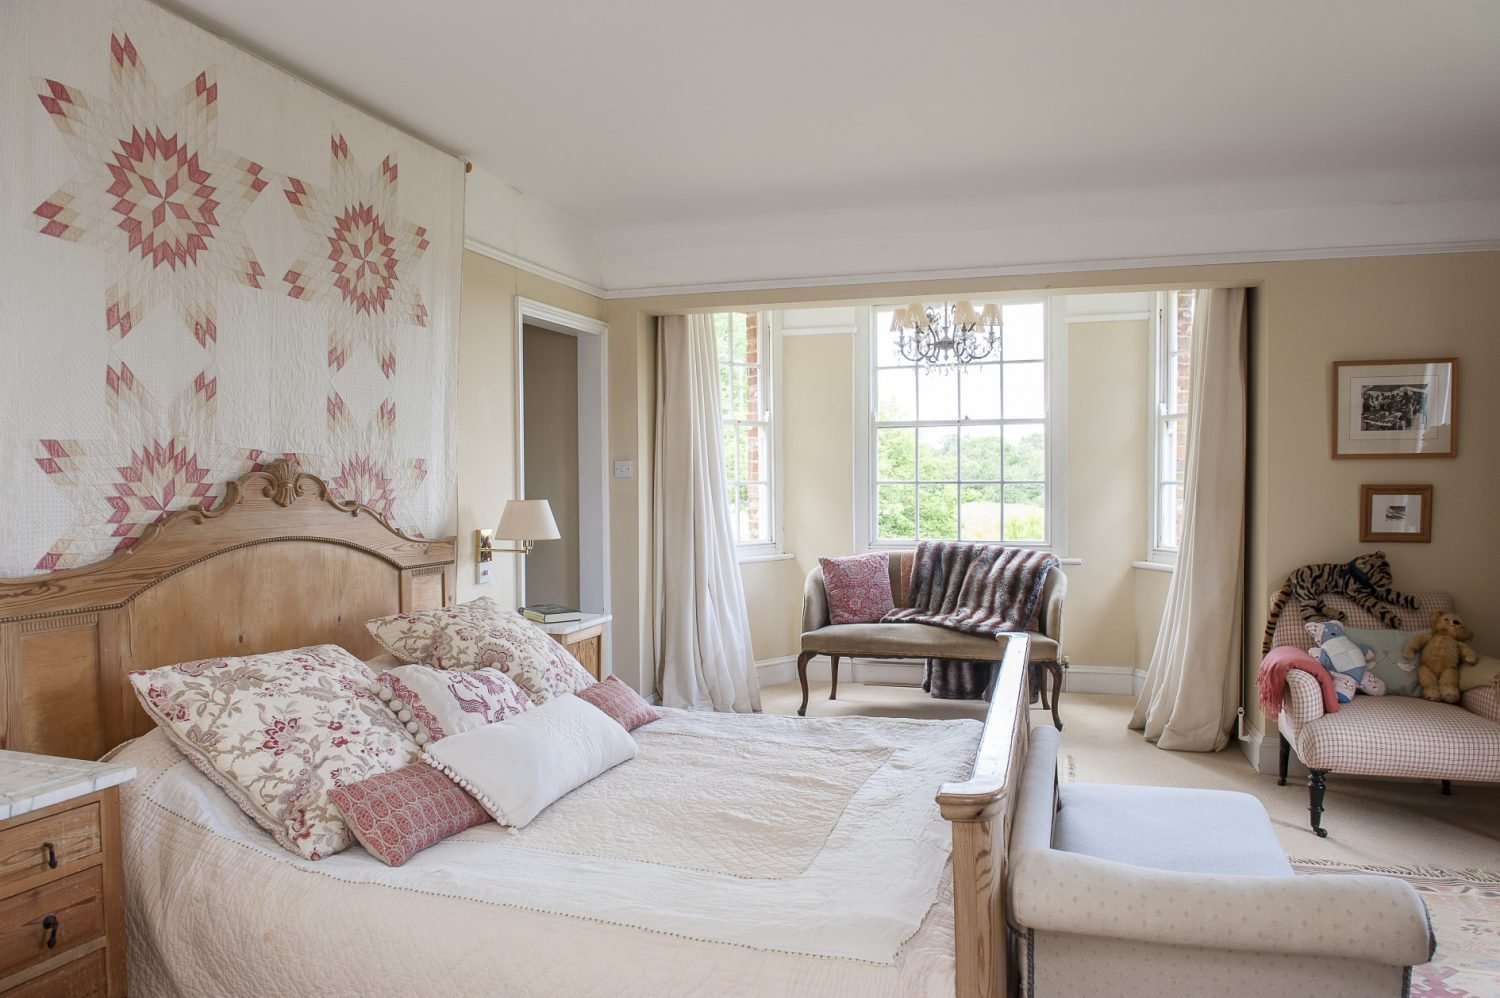 The master bedroom features lovely paisley throws and washed out kilims